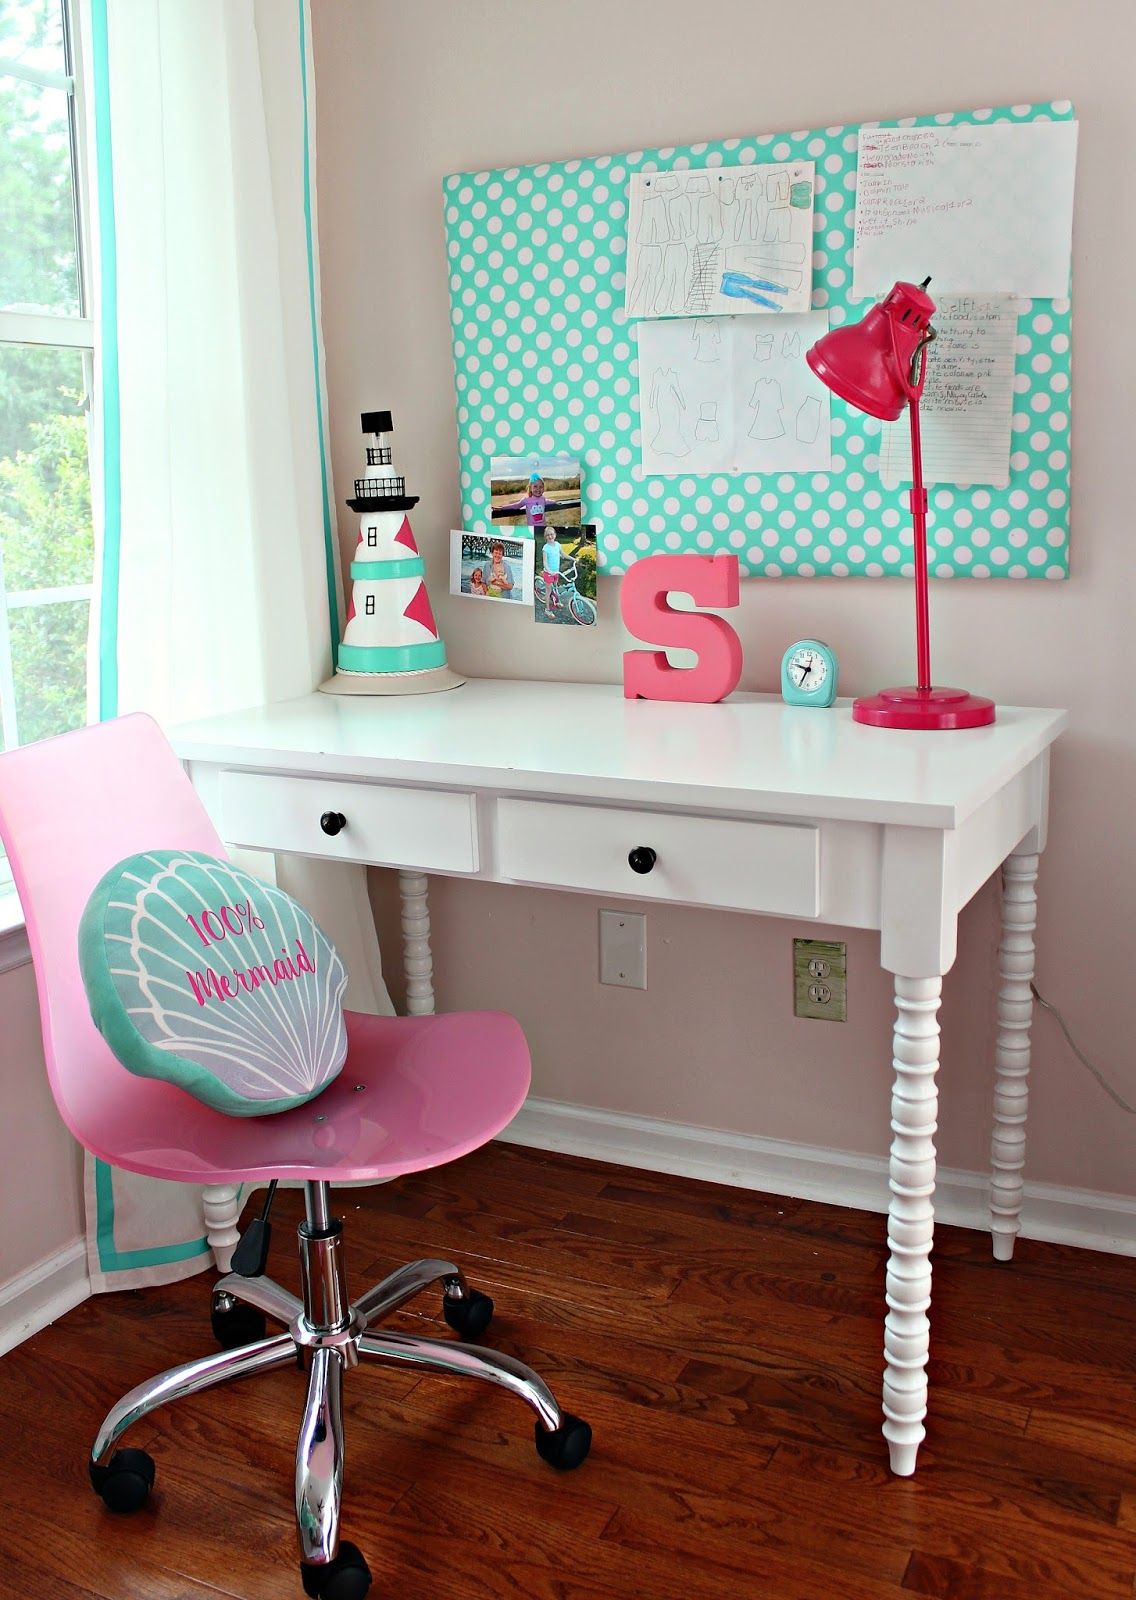 Turquoise Desk Chair Target Bentwood Bistro Chairs For Sale Carolina On My Mind Savannah 39s Bedroom Mini Makeover Reveal